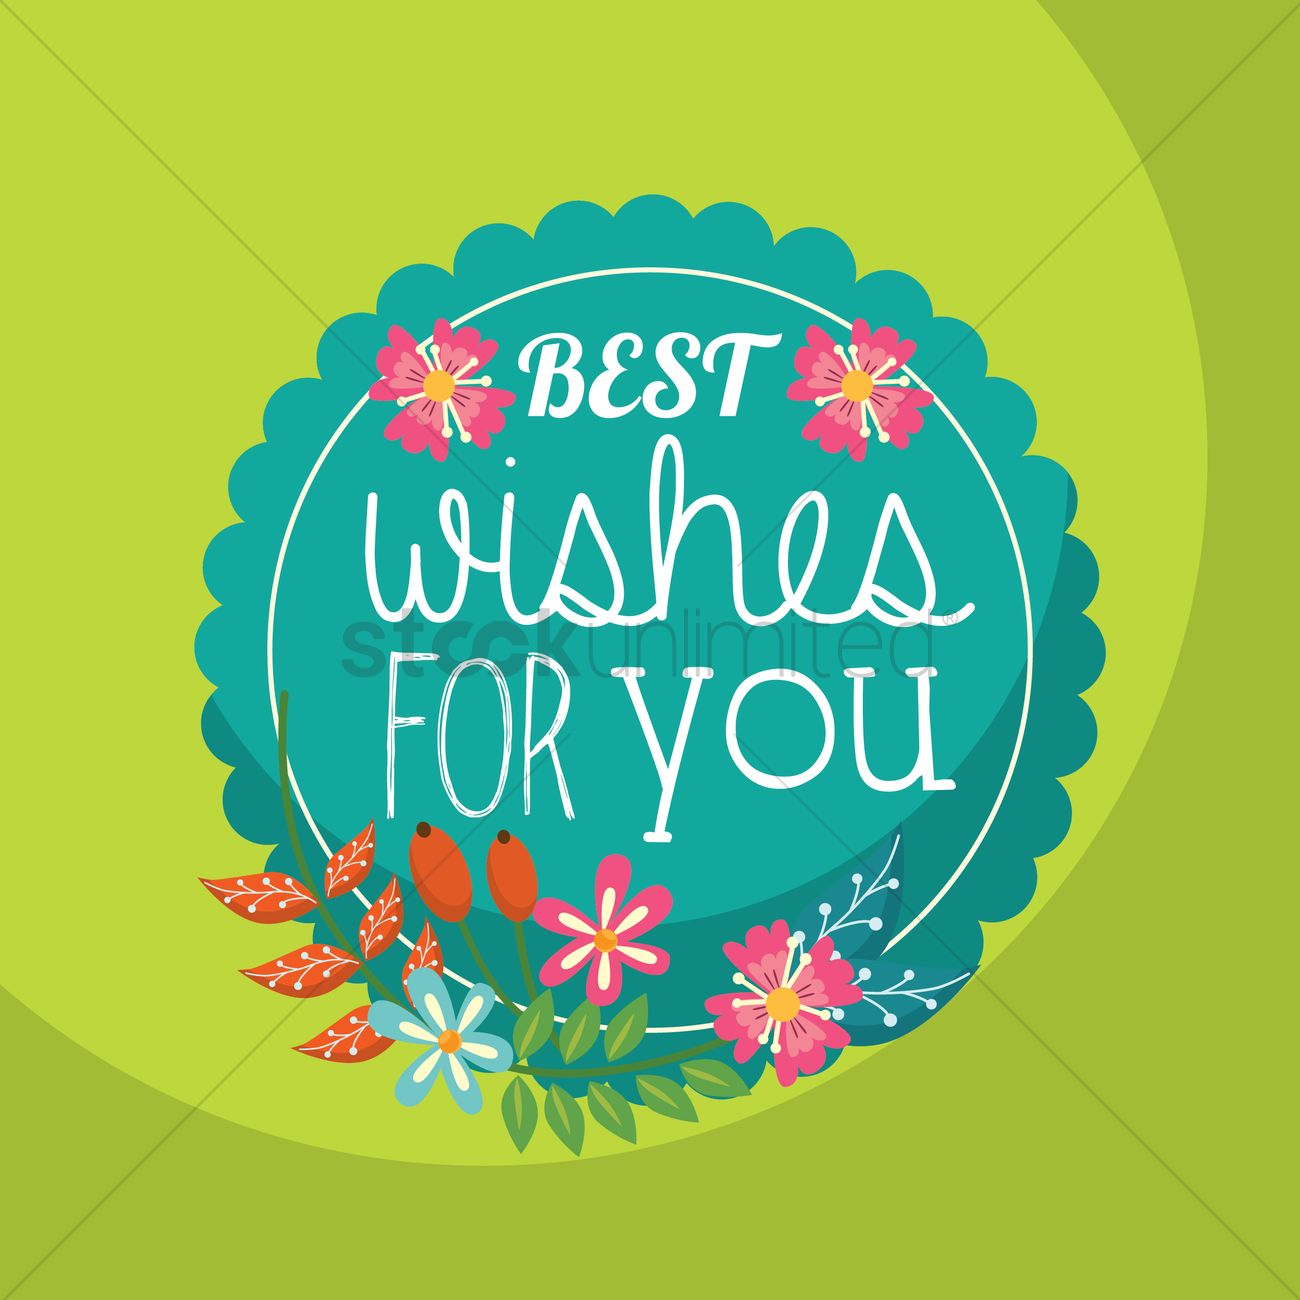 Best Wishes For You Vector Image - 1811267